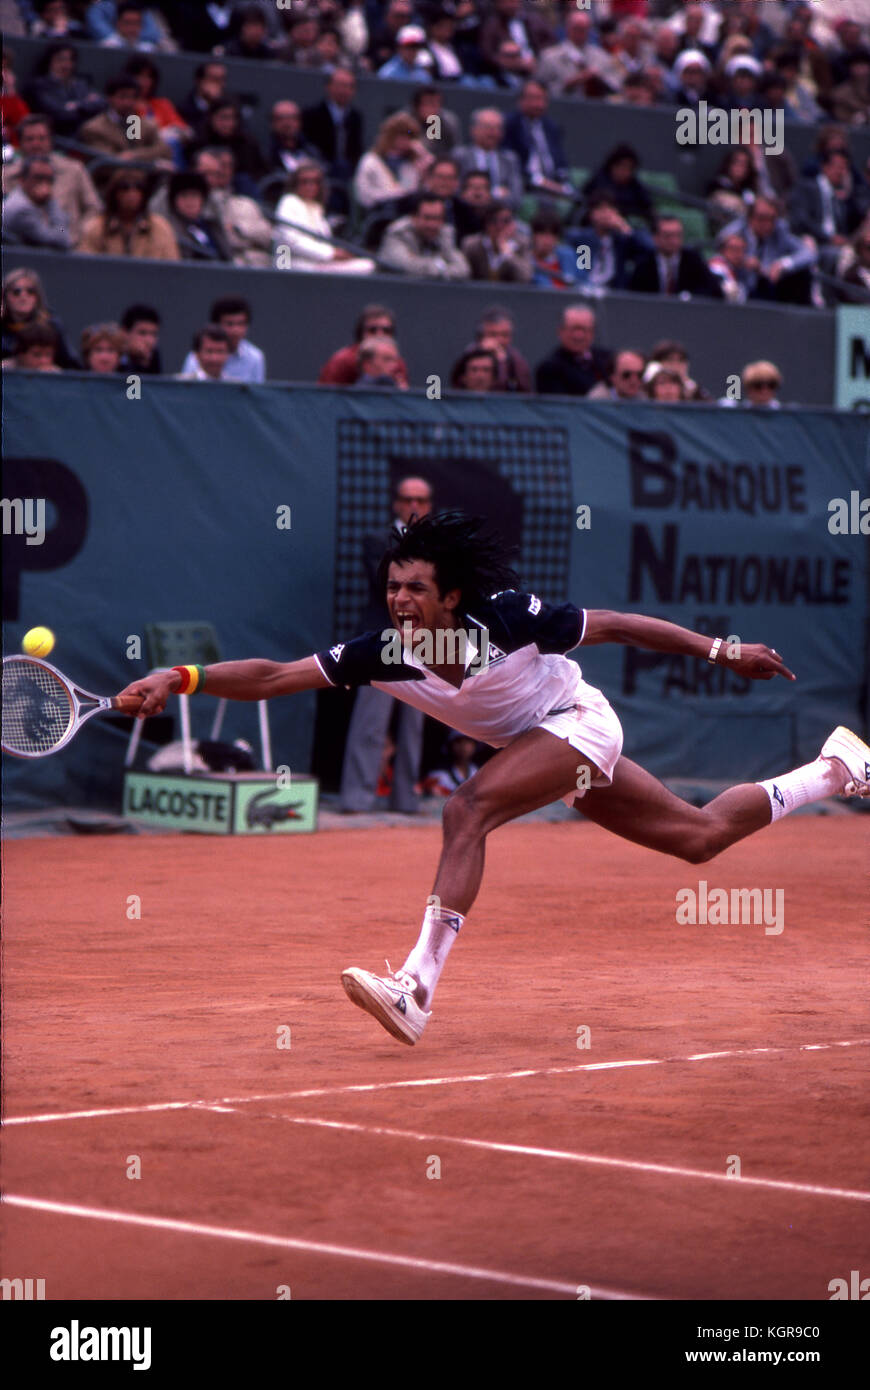 Yannick Noah at the 1983 French Open at Roland Garros. - Stock Image